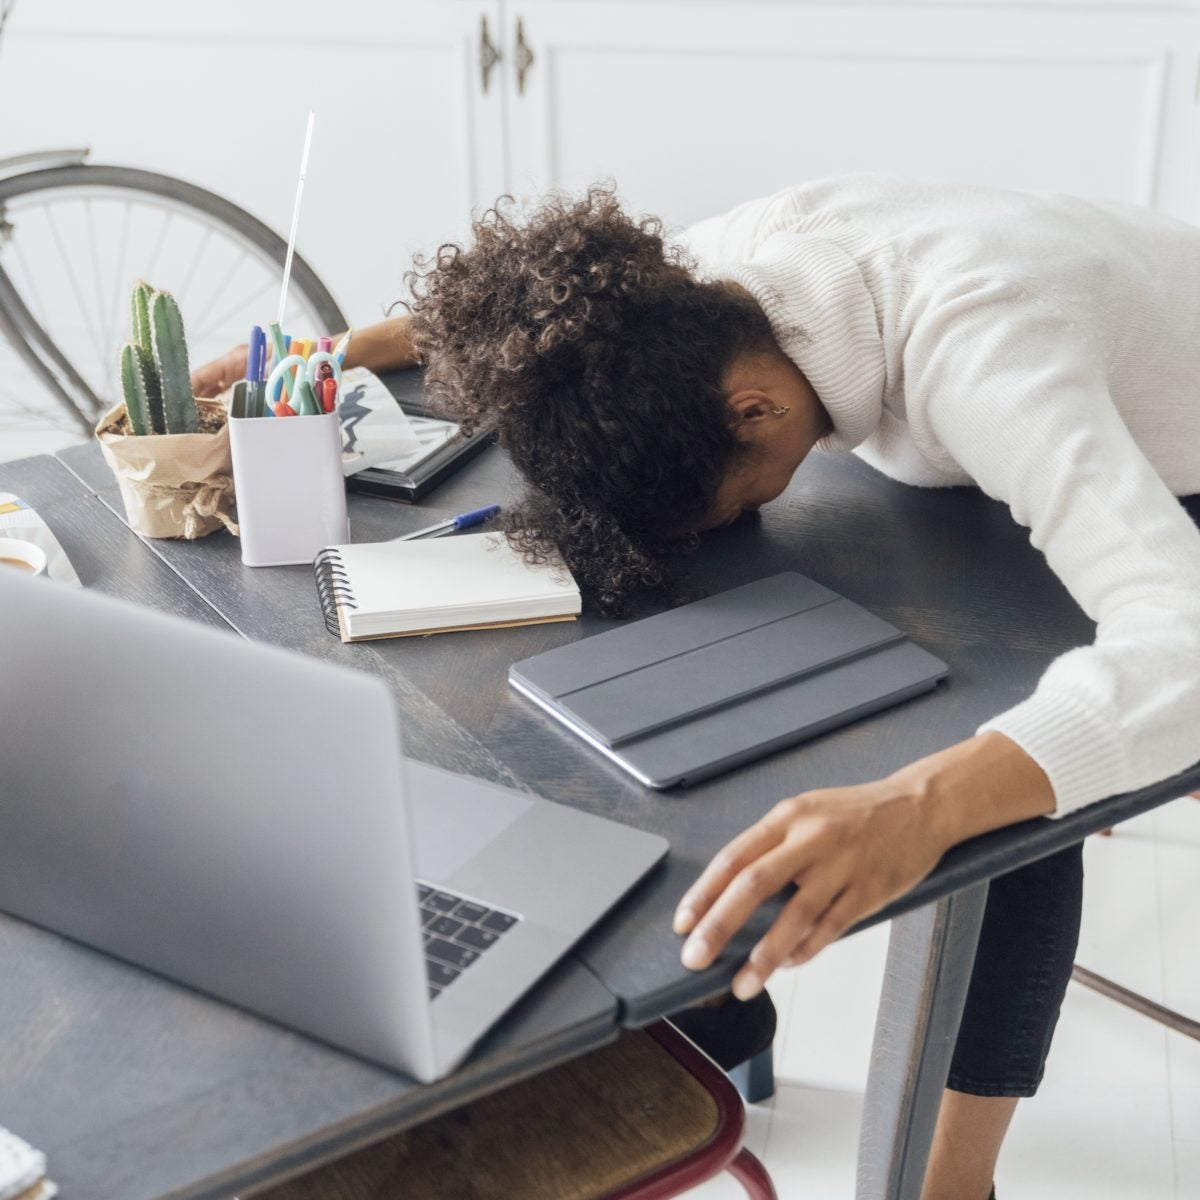 Self-Care For Entrepreneurs During An Economic Crisis: Go Harder Or Pause & Reflect?